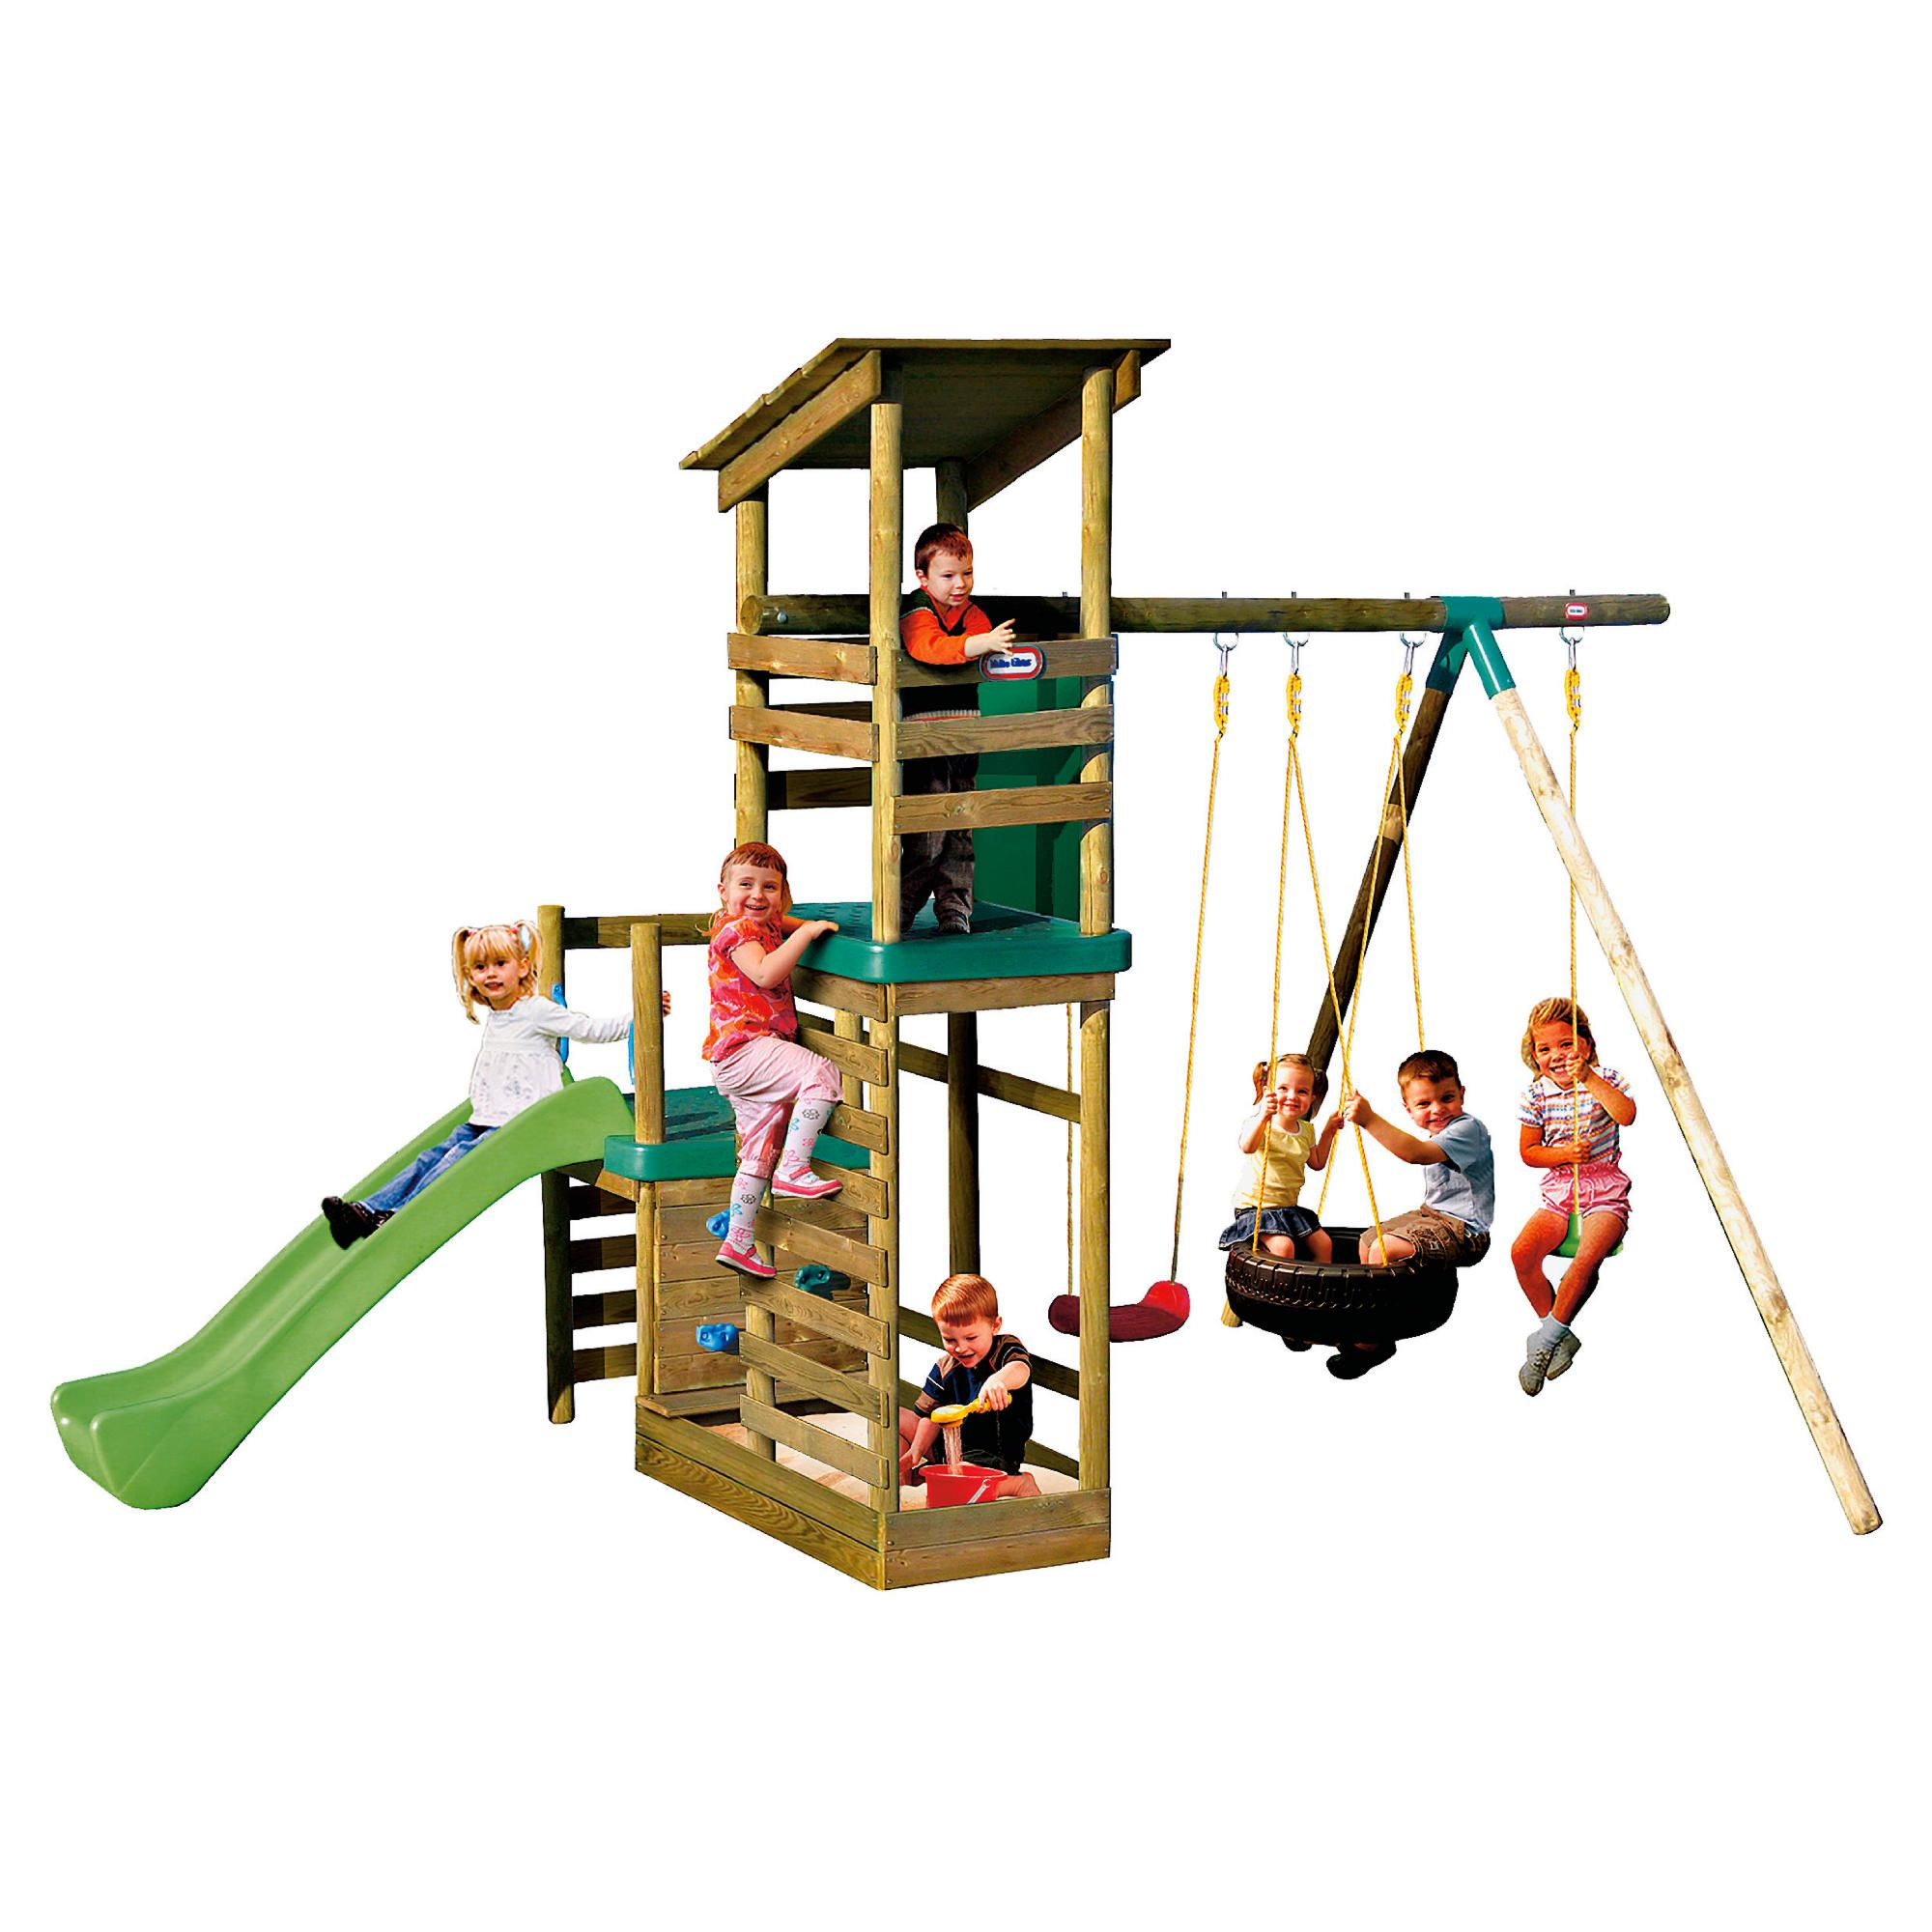 Little Tikes Buckingham Climb Slide 'n? Sand Play Swing Set at Tesco Direct